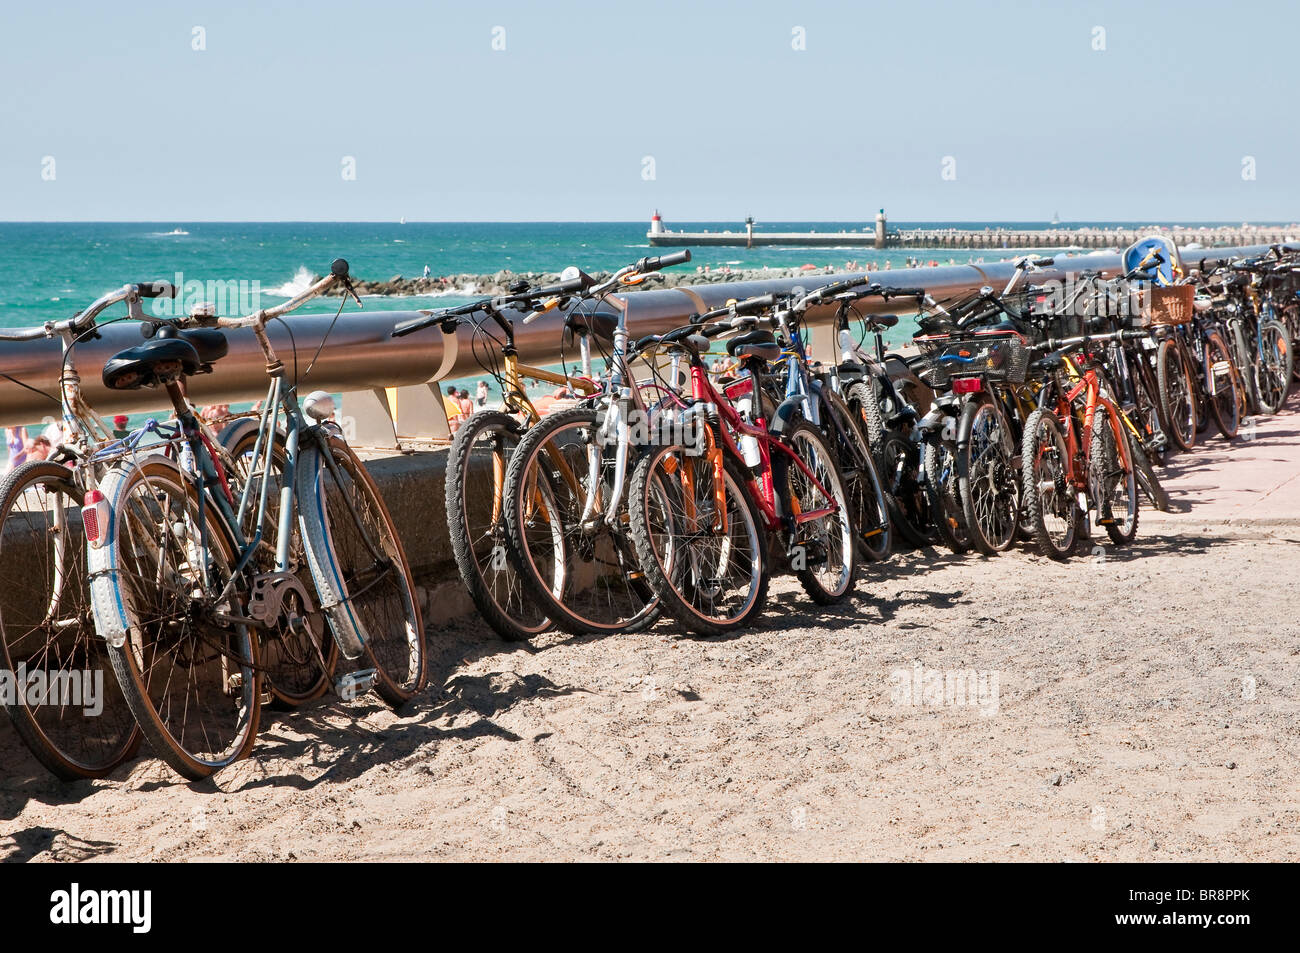 Many bikes along the beach during a beautiful day Stock Photo